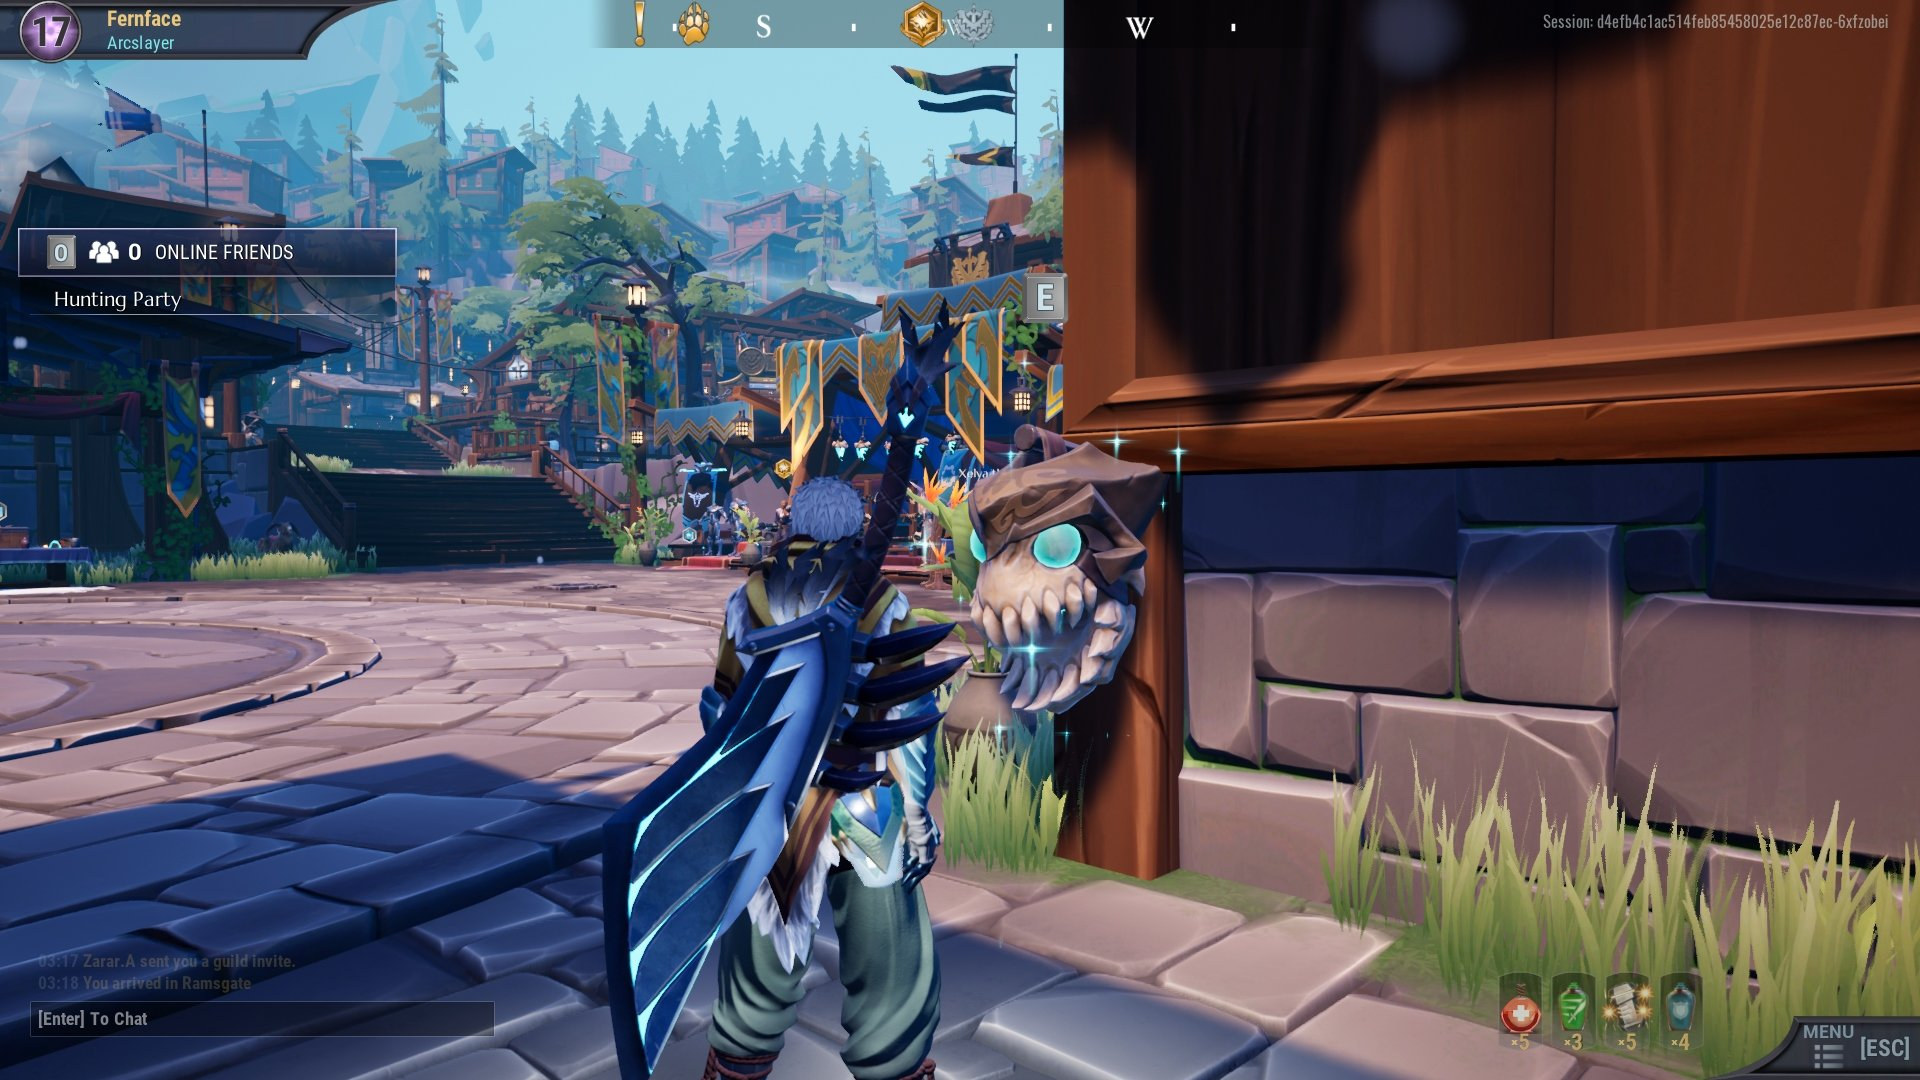 Dread Skull 1 - All daily Dread Skull locations in Dauntless